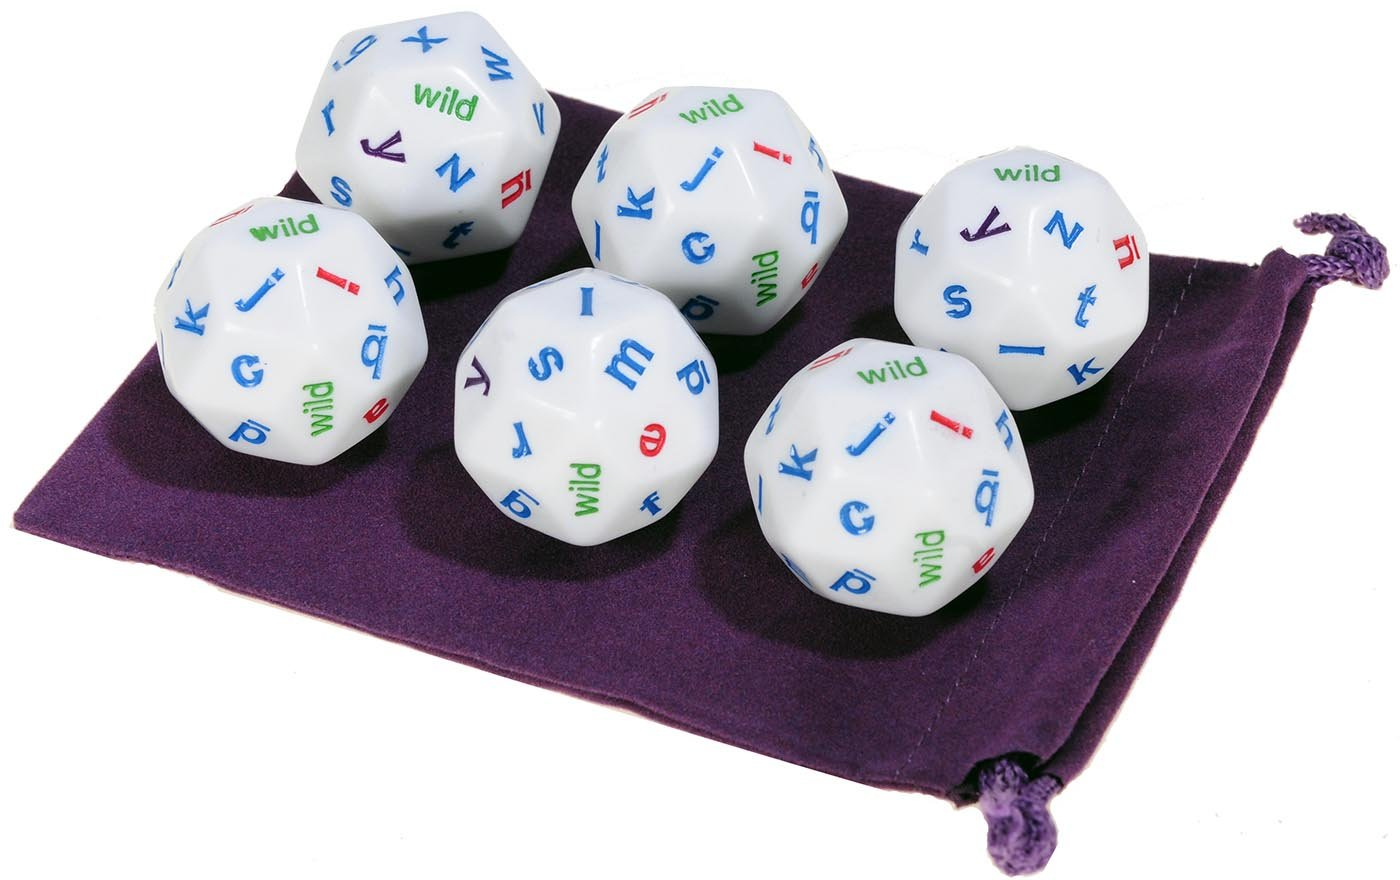 Alphabet Jumbo Dice, 30-Sided _ Set of 6 Identical Dice _ Bonus Purple Velveteen Drawstring Storage Pouch _ Bundled Items by Deluxe Games and Puzzles